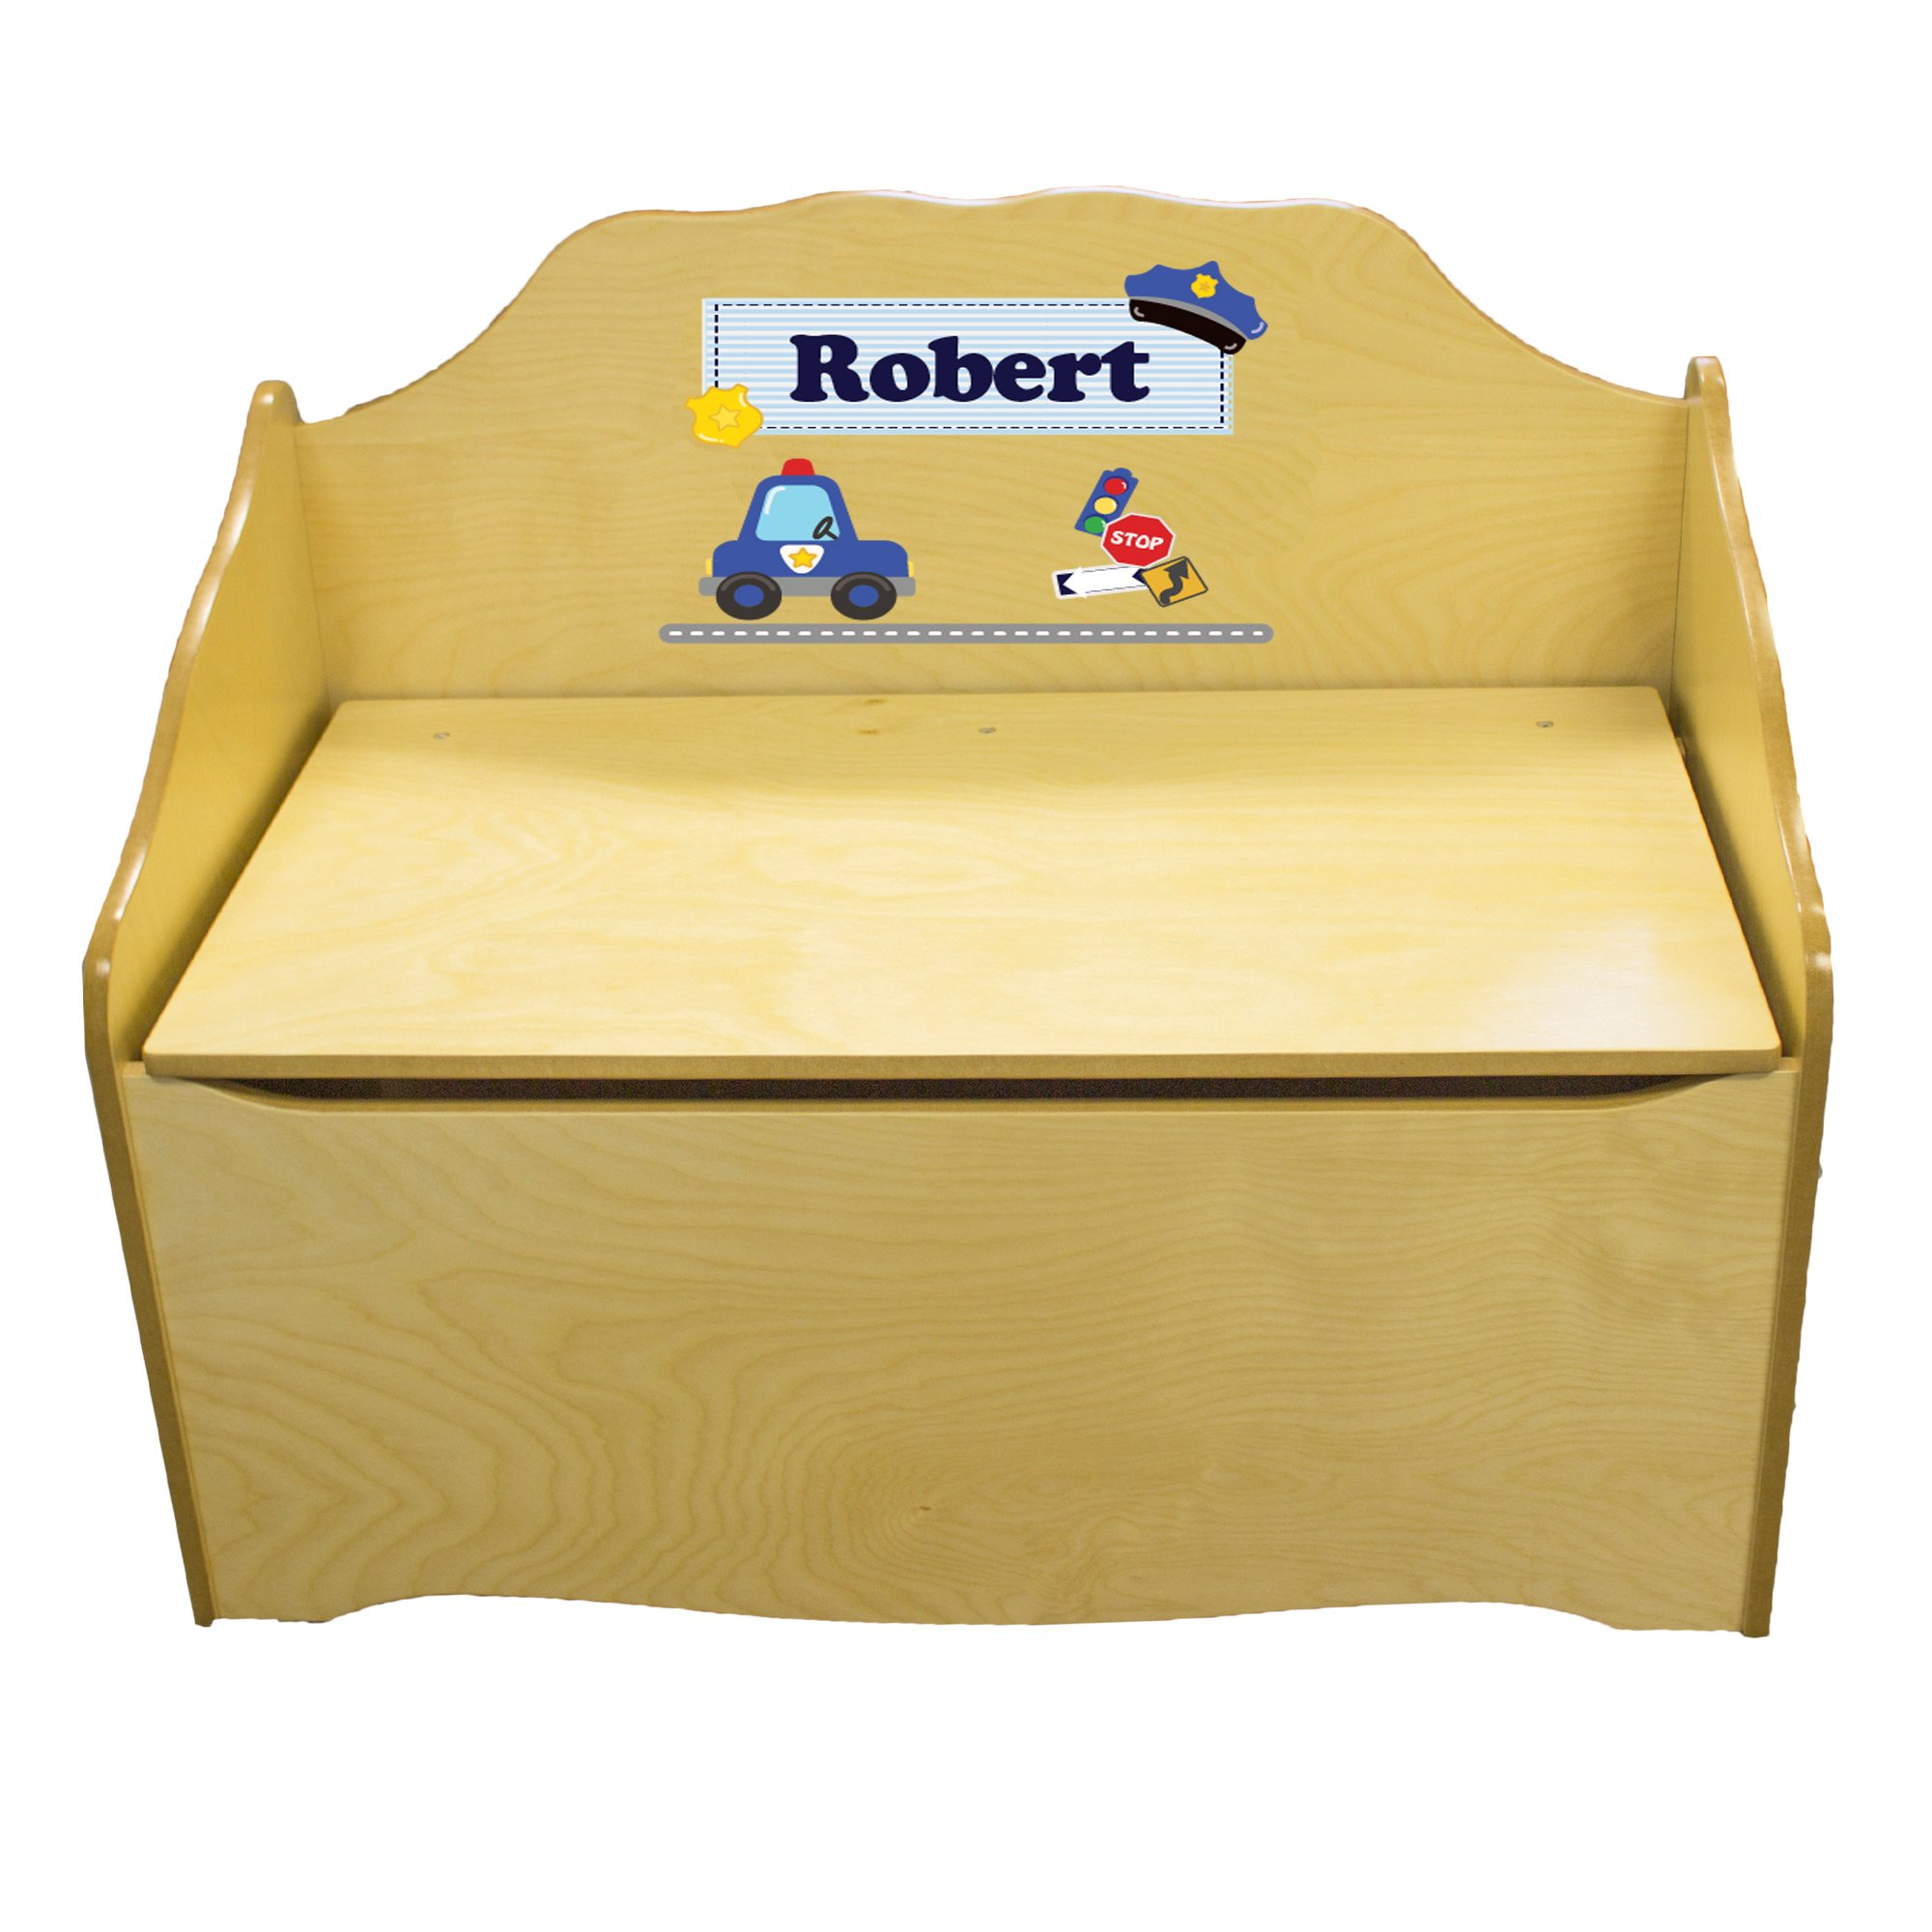 Personalized rtdPolice Childrens Natural Wooden Toy Chest